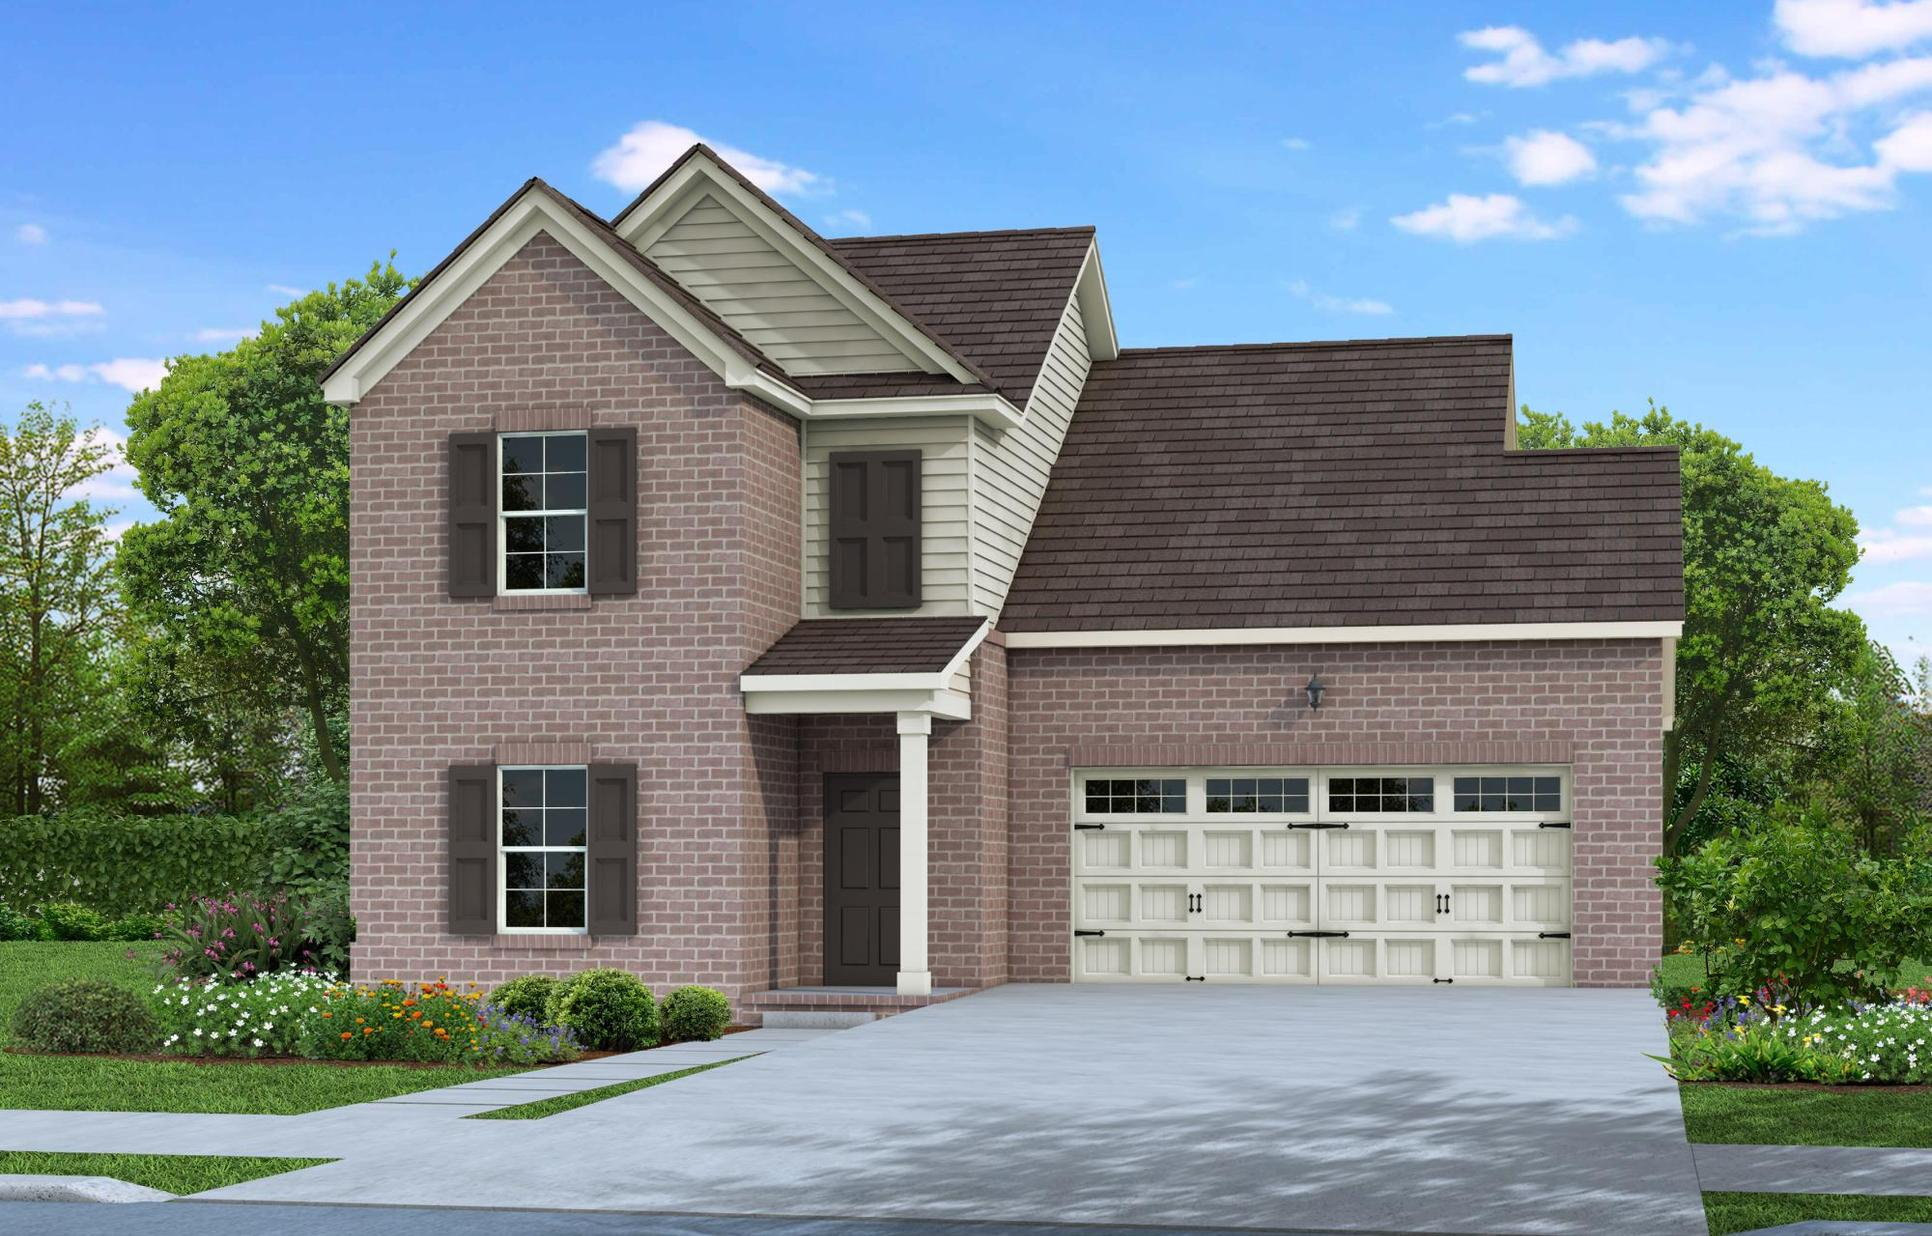 Exterior:The Kingsmont Traditional